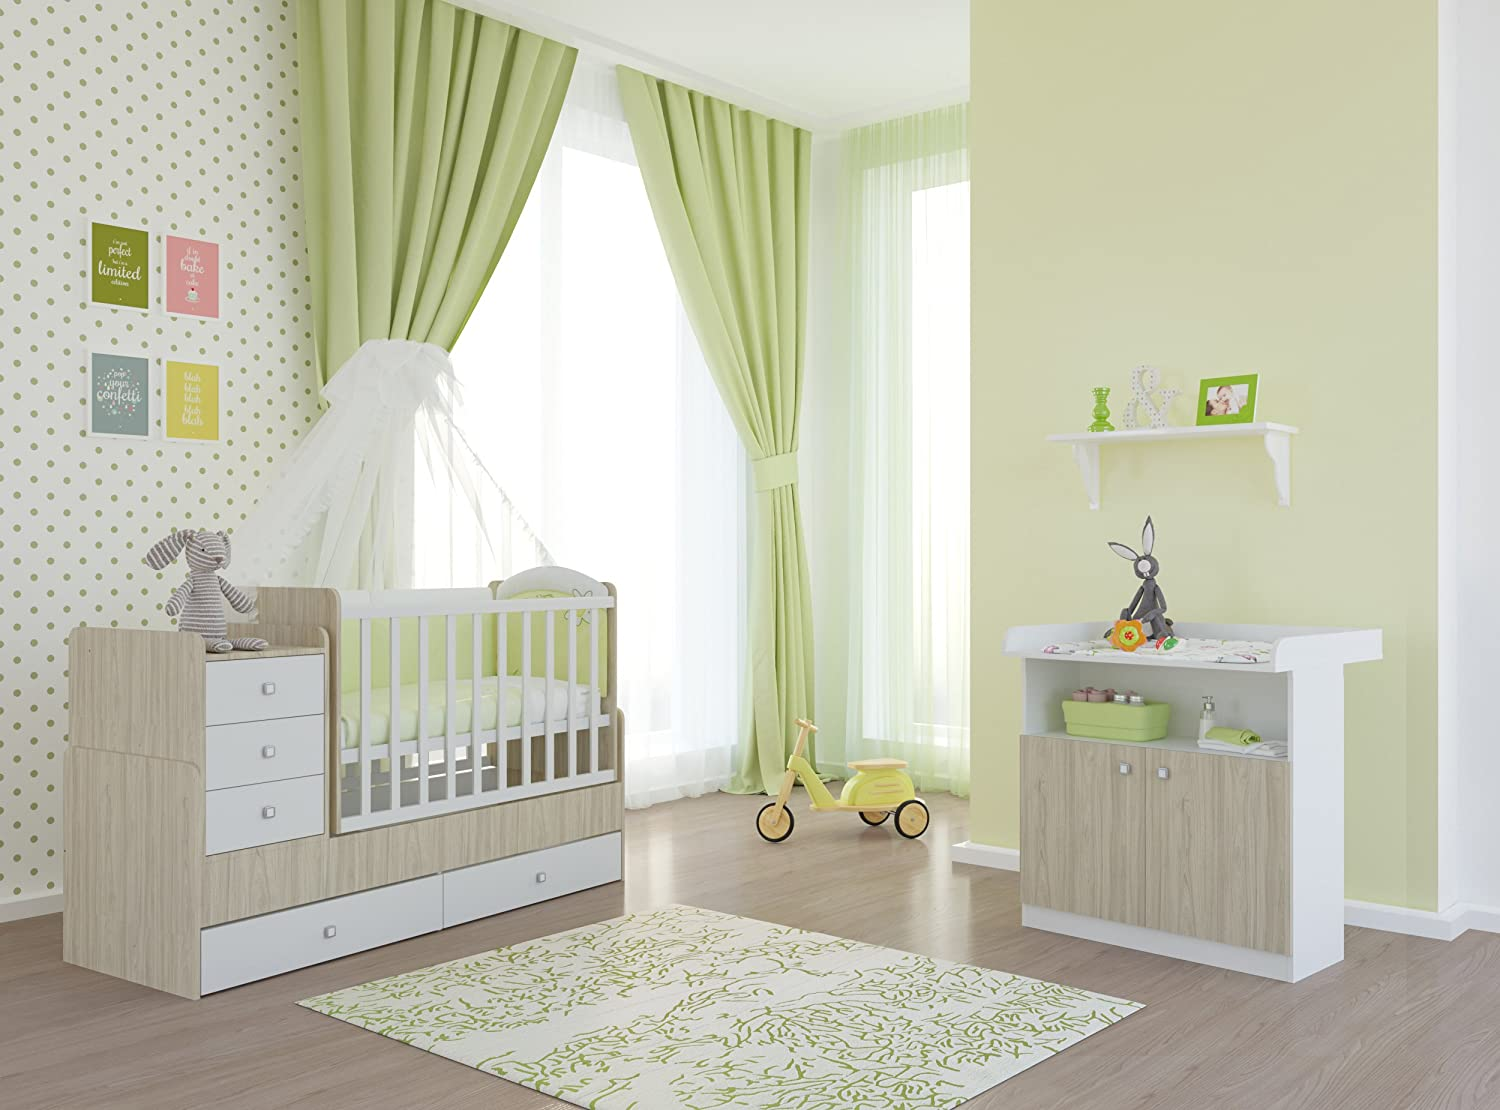 polini kids babyzimmer set mit babybett kinderbett juniorbett simple 1100 und wickelkommode. Black Bedroom Furniture Sets. Home Design Ideas